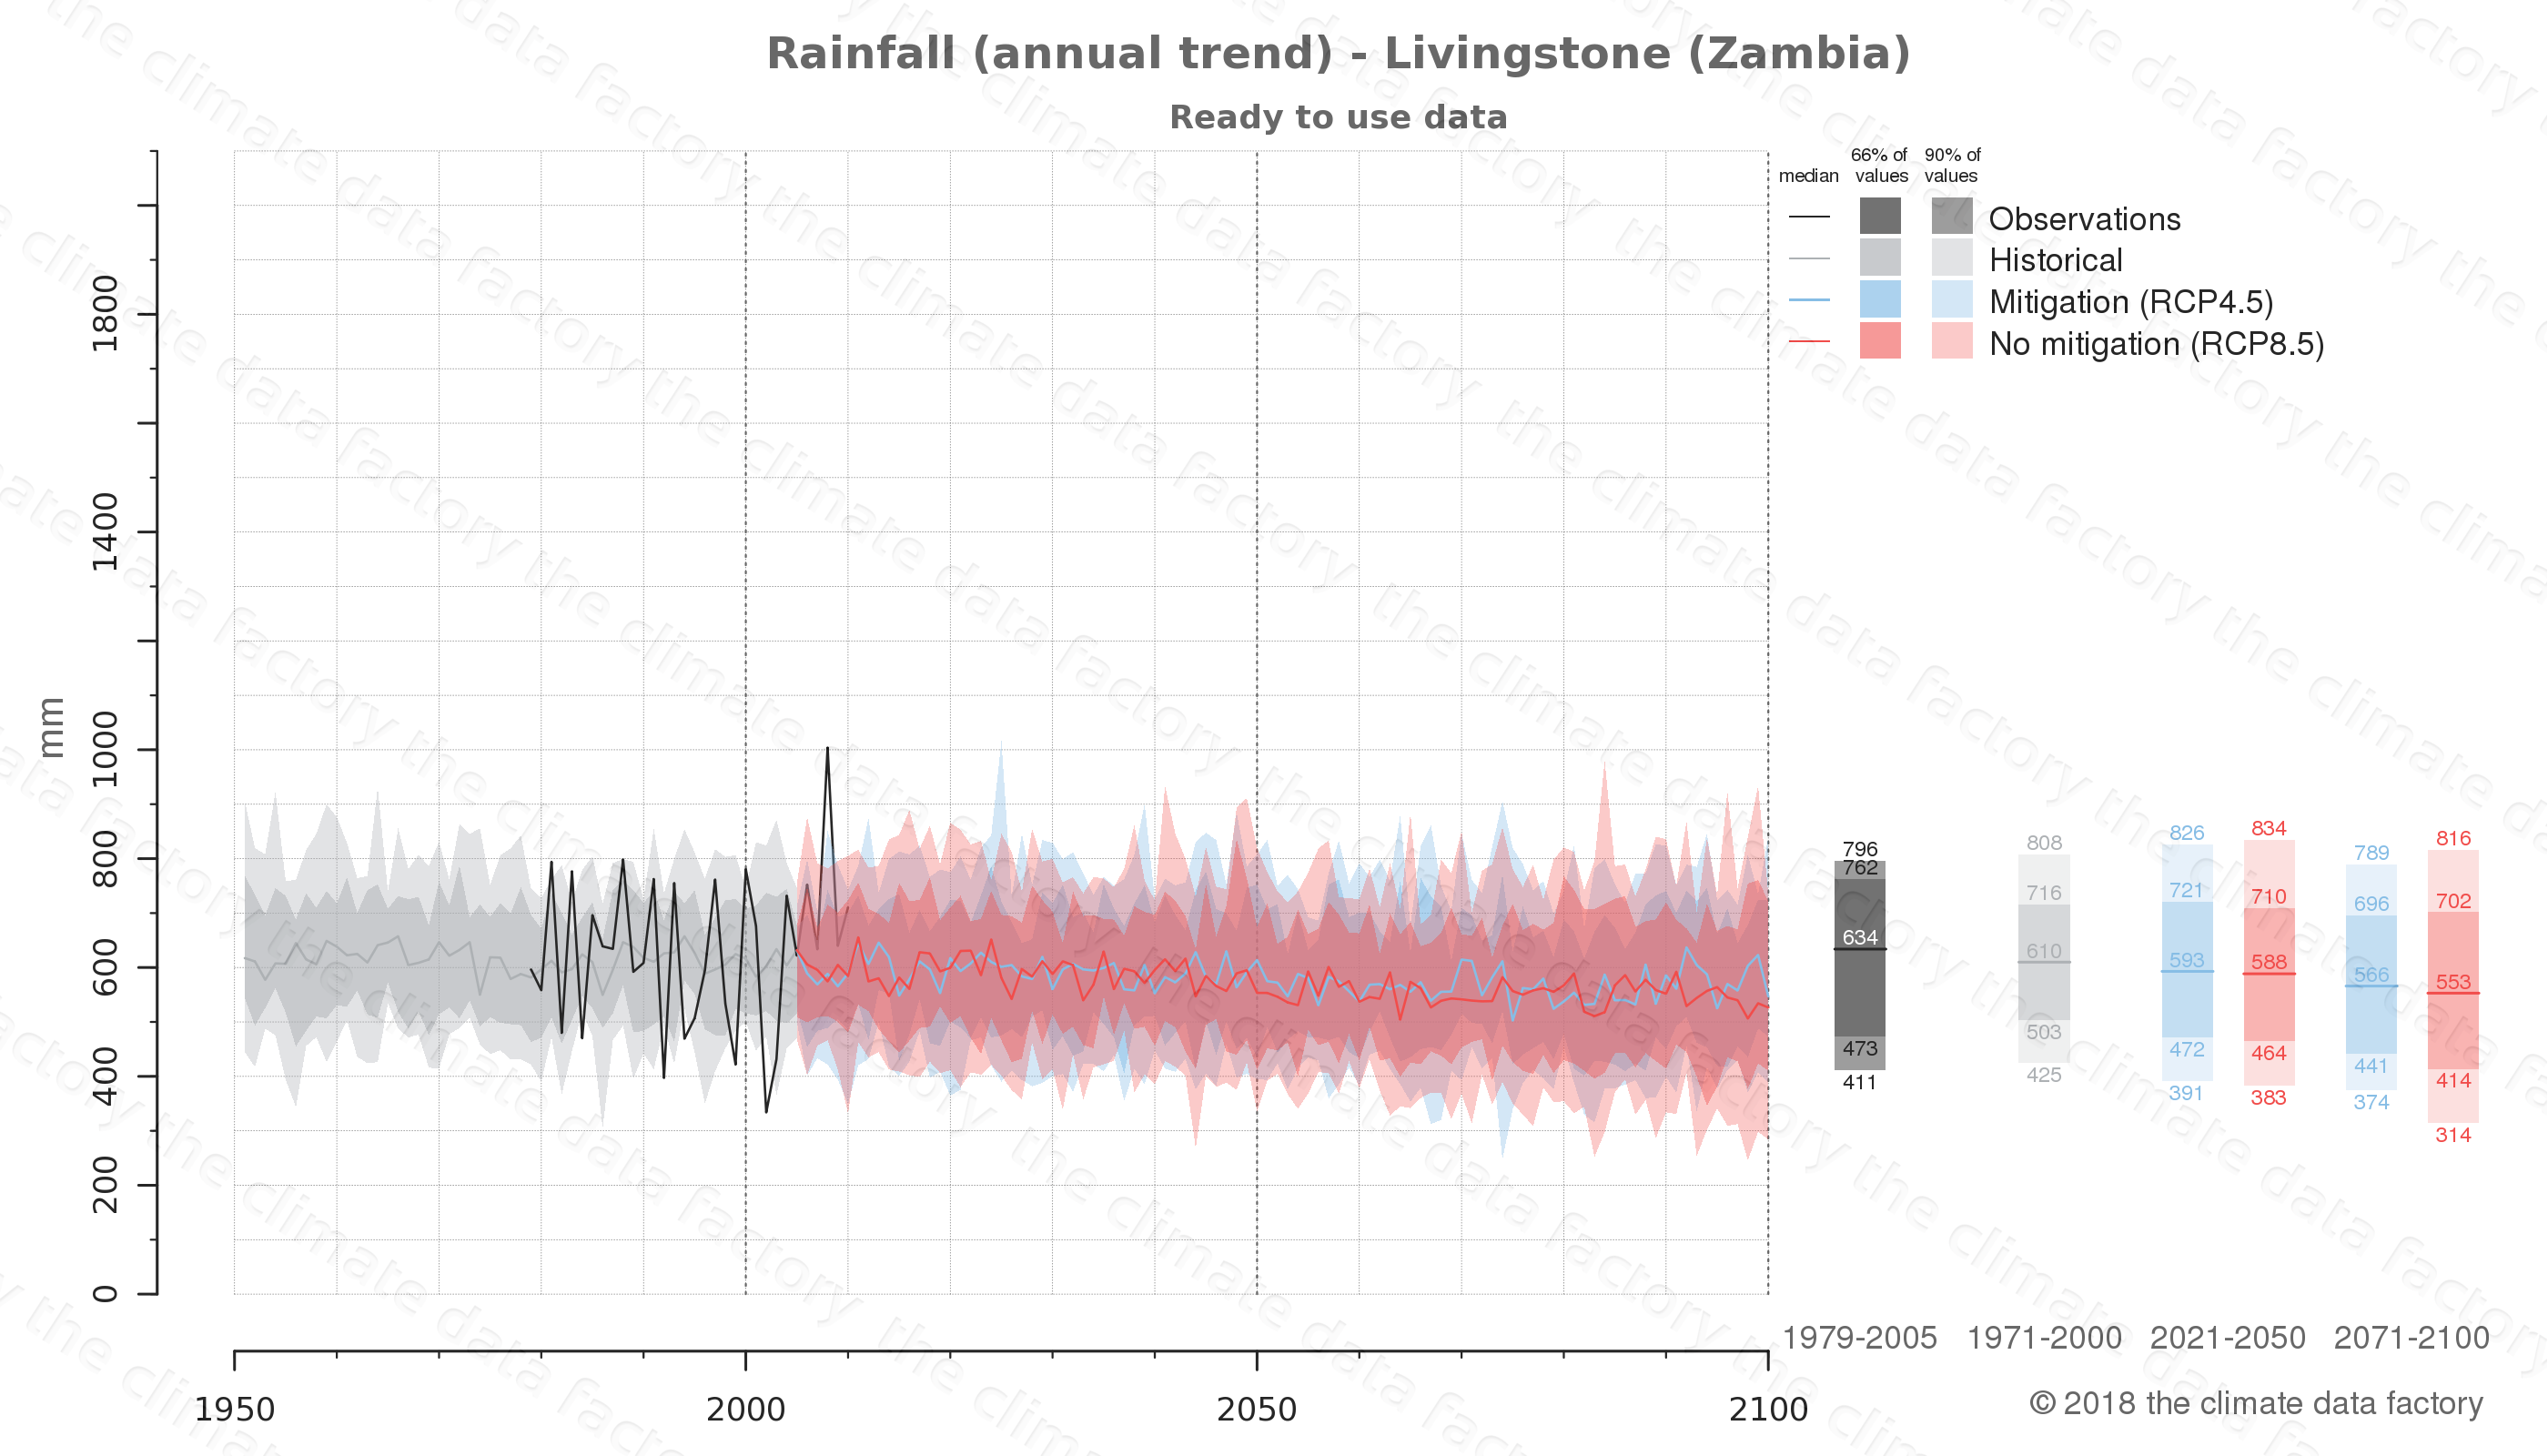 climate change data policy adaptation climate graph city data rainfall livingstone zambia